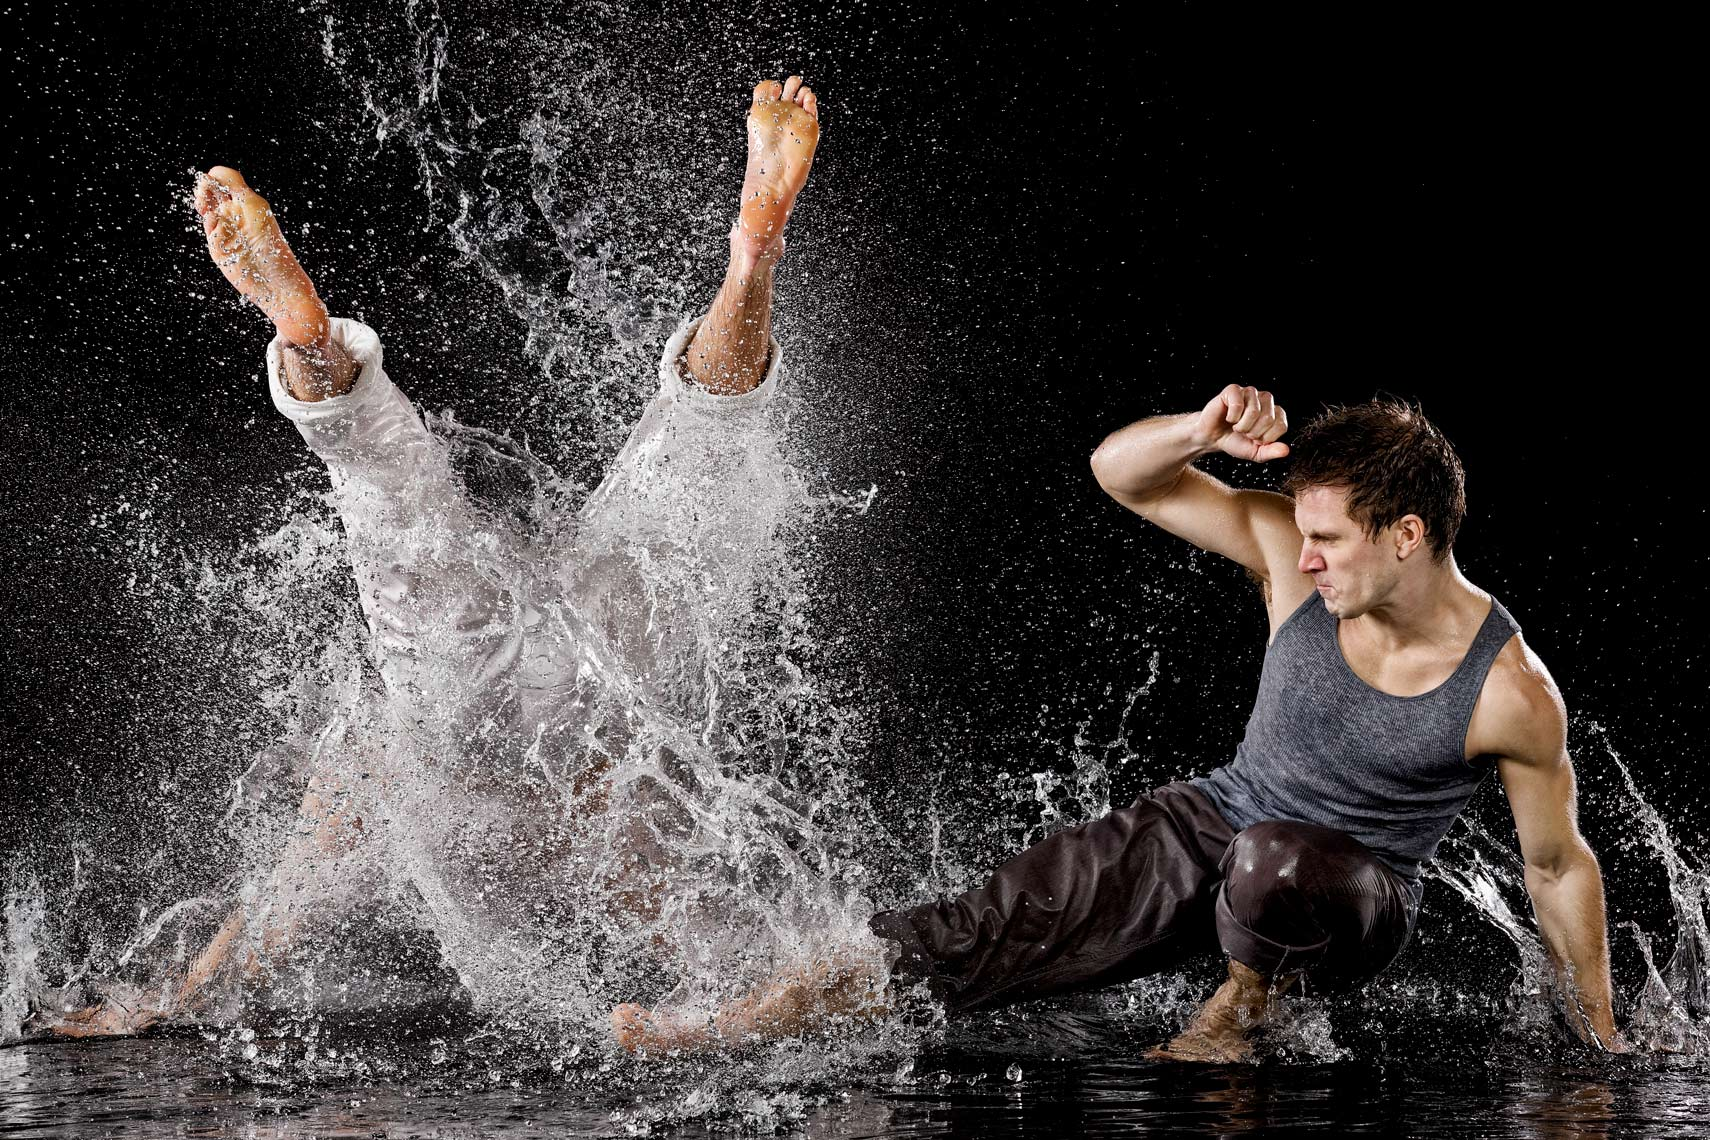 Martial-Art-Splash-5-0465-Edited.jpg